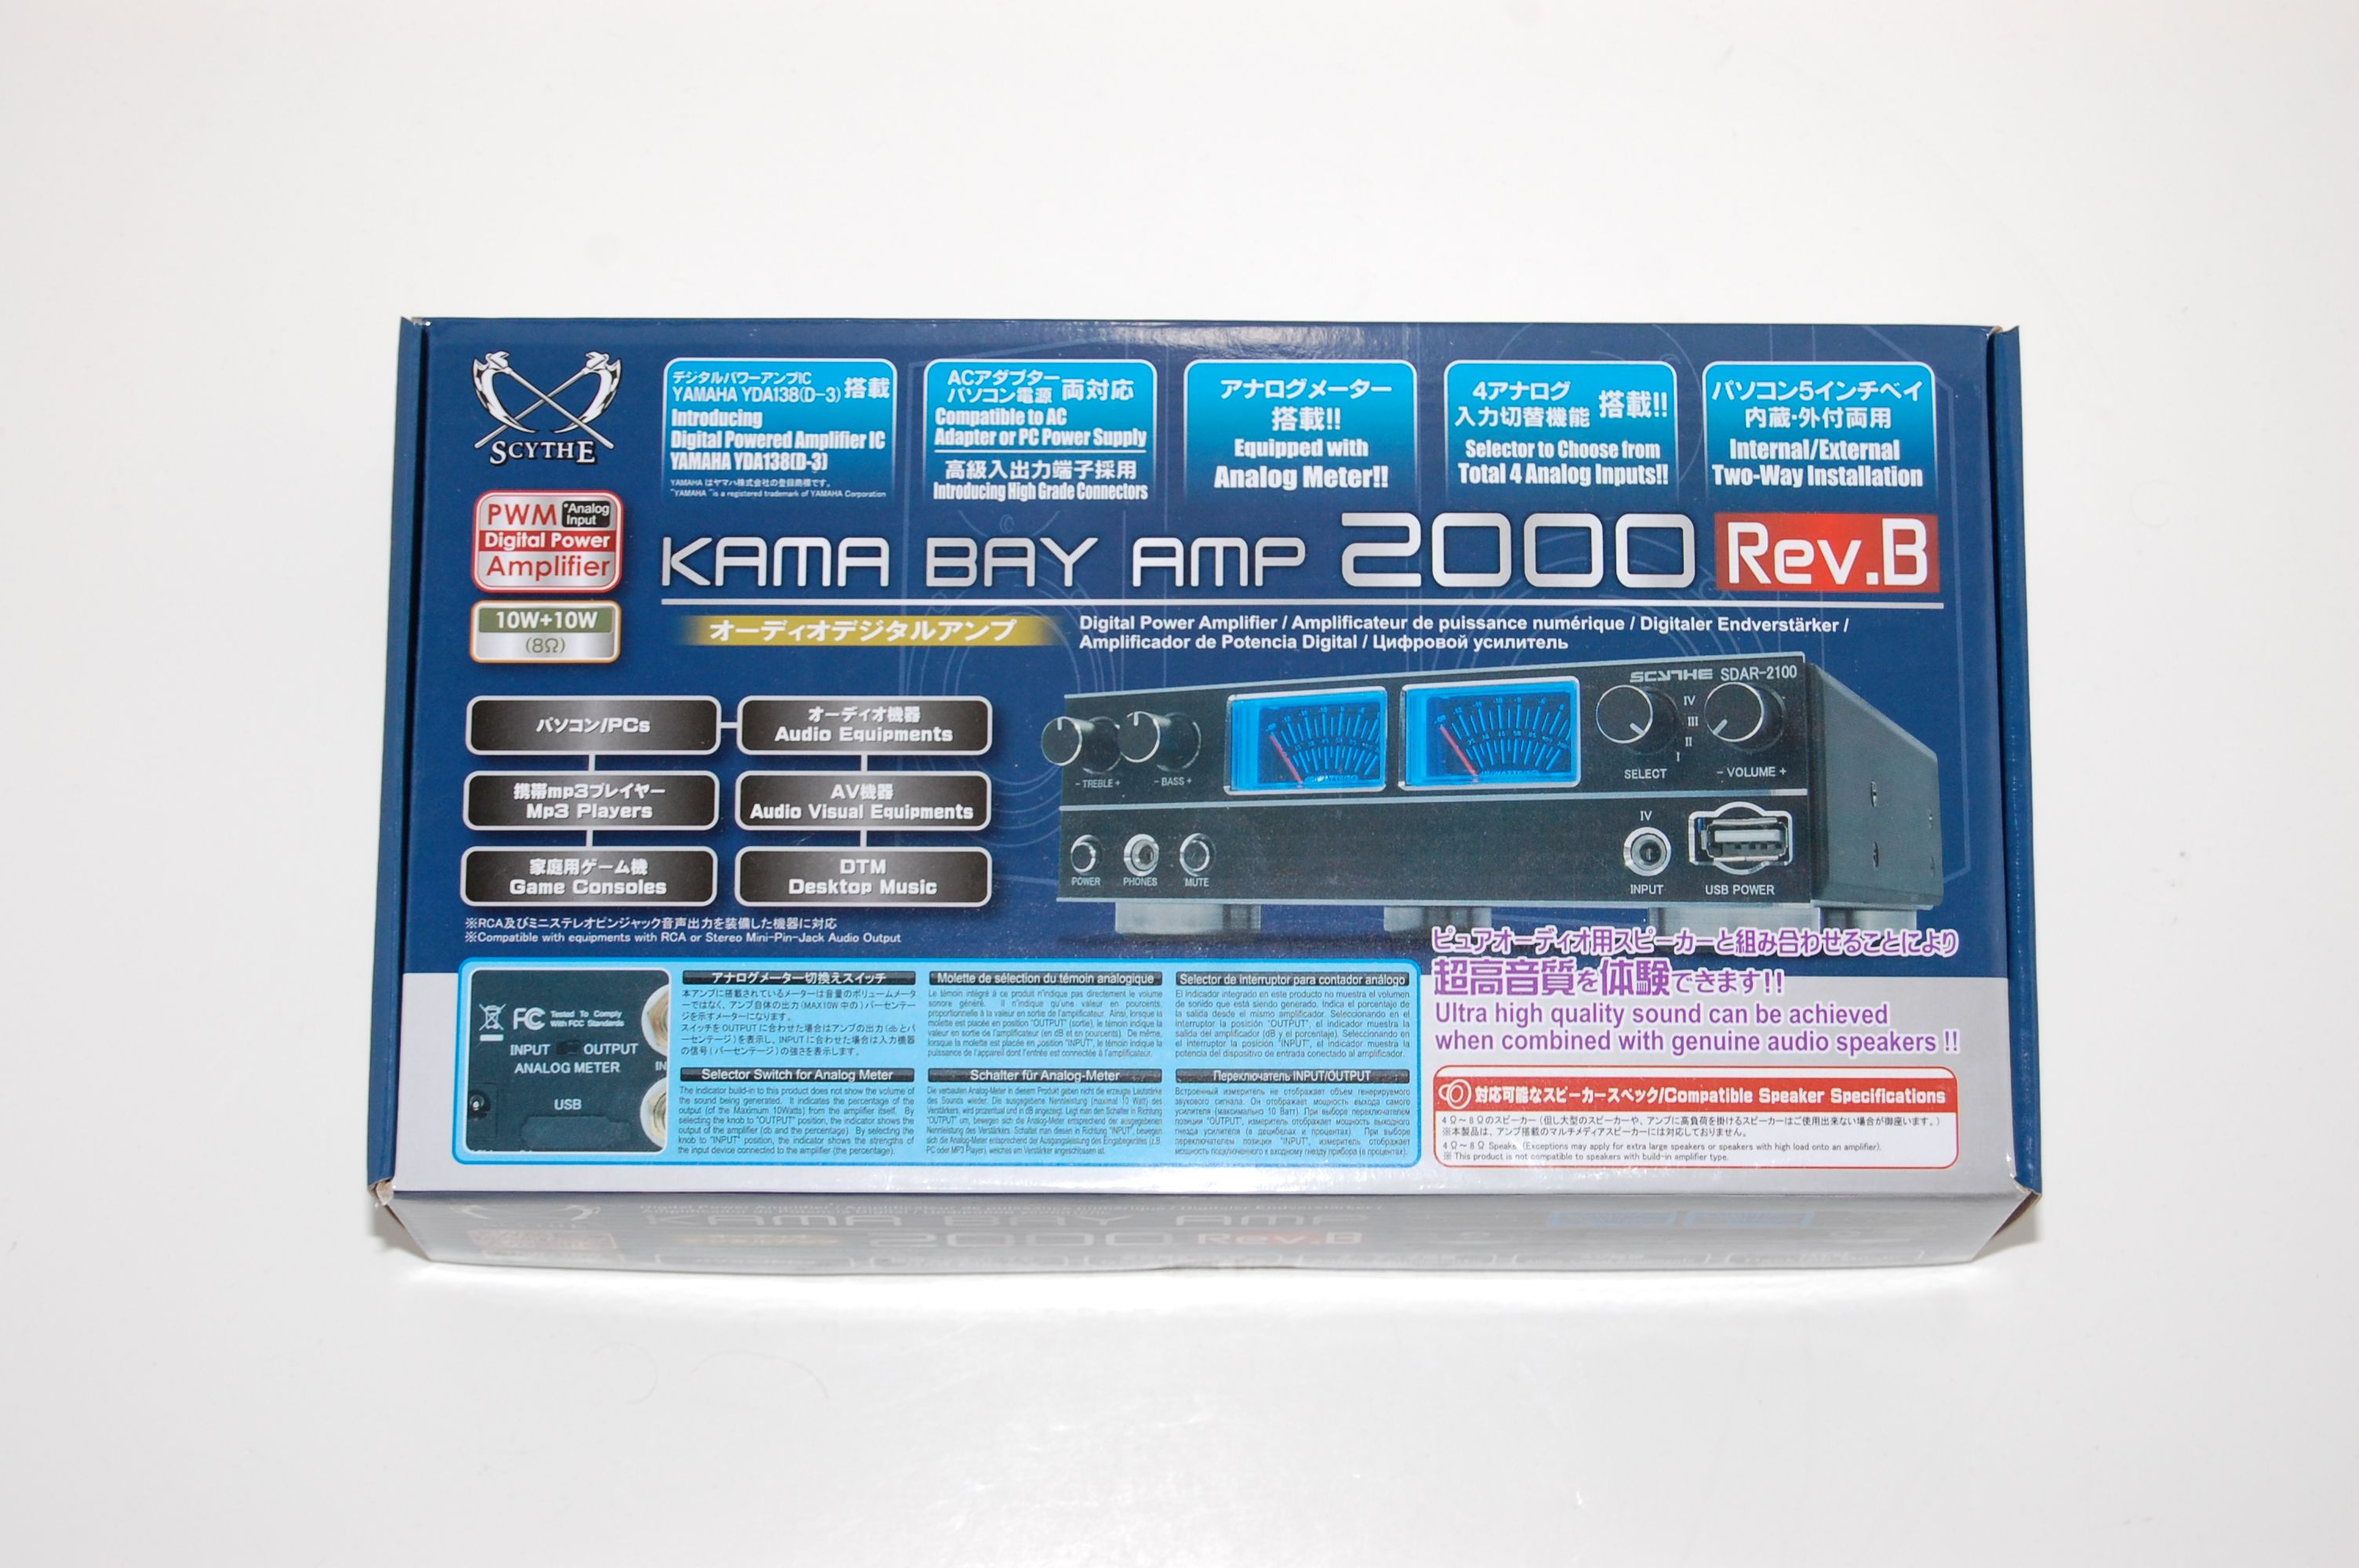 b_0_0_0_00_images_stories_ScytheKamaByAmp_DSC_0698.JPG